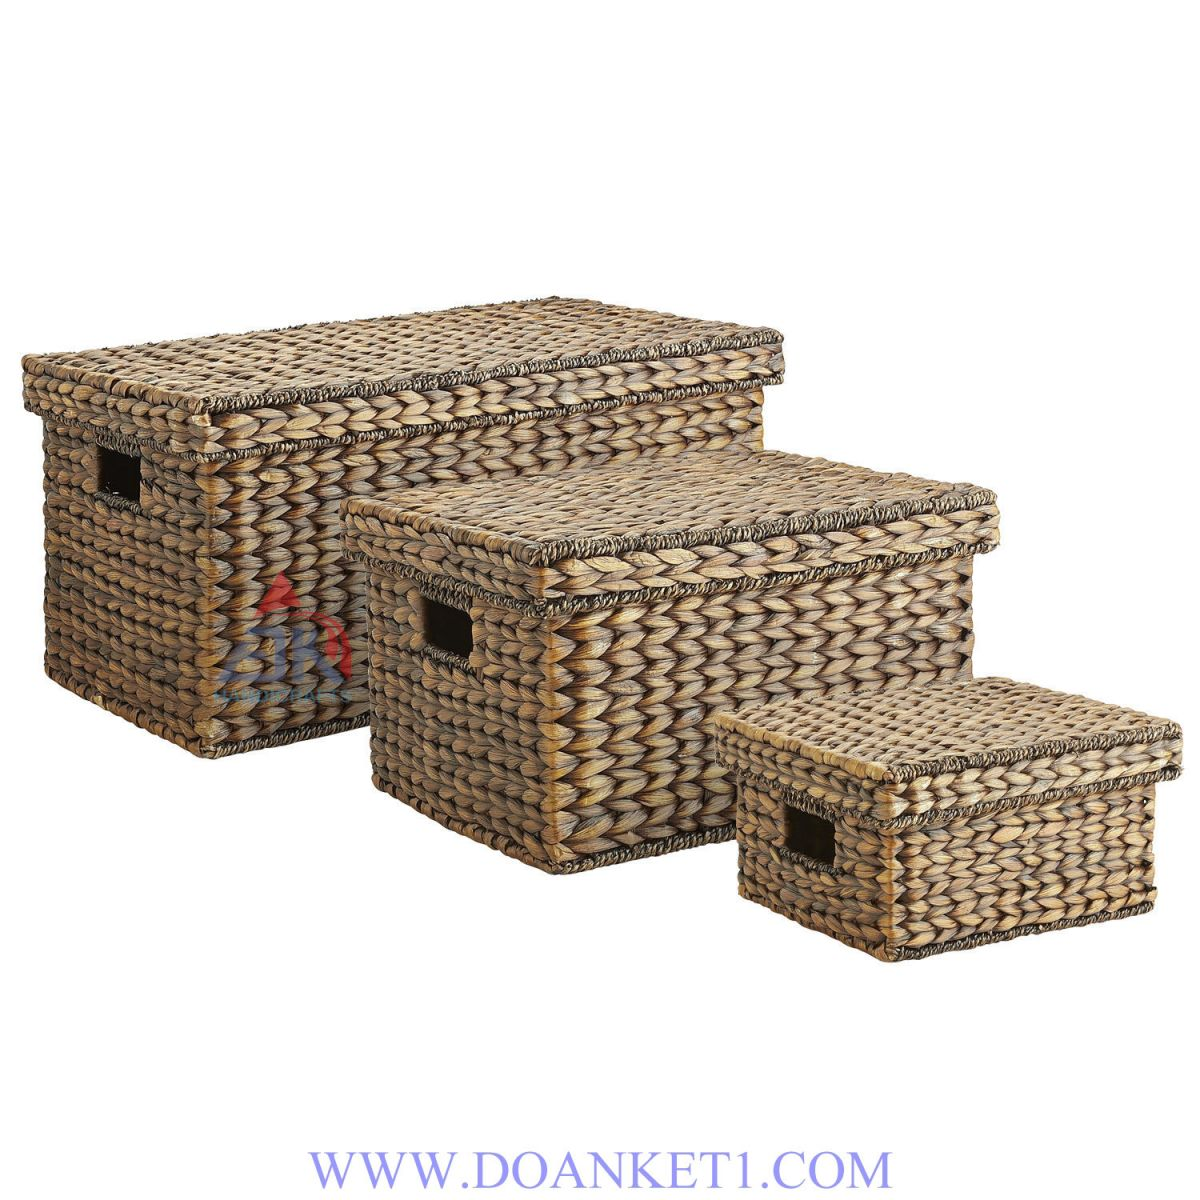 Water Hyacinth Basket With Lid S/3 # DK340